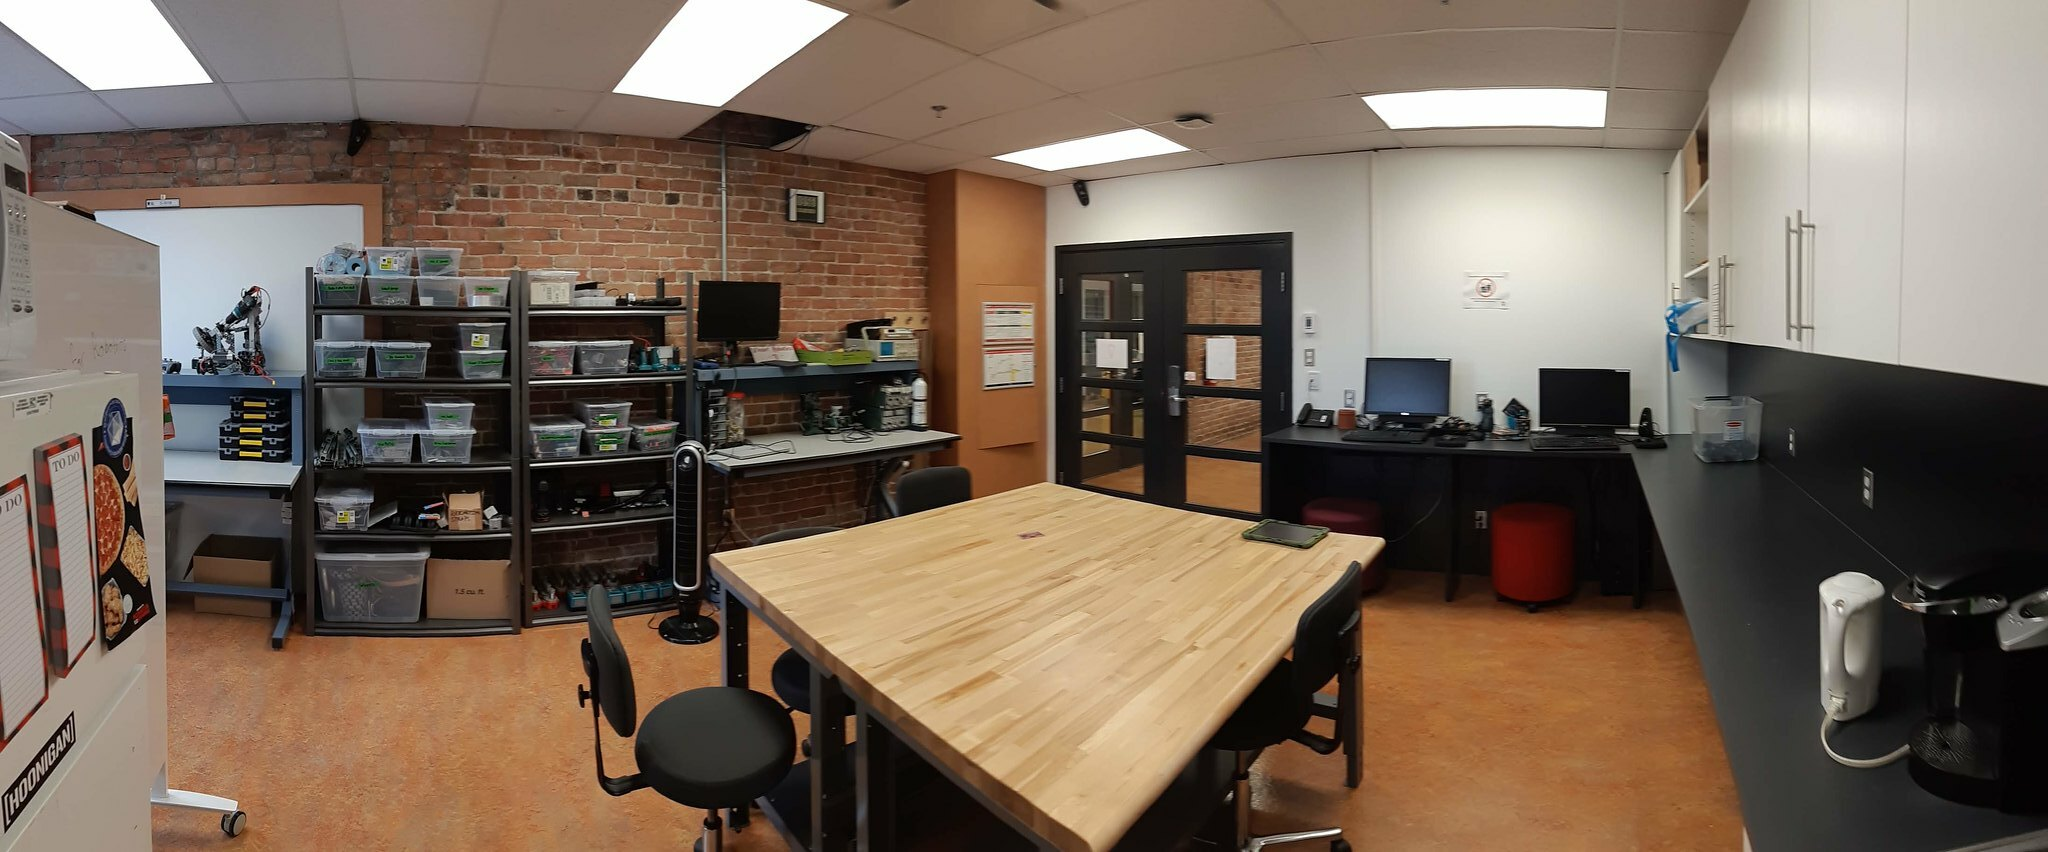 Pictures of various fab labs, of their equipment, and of projects that can be realized by the students